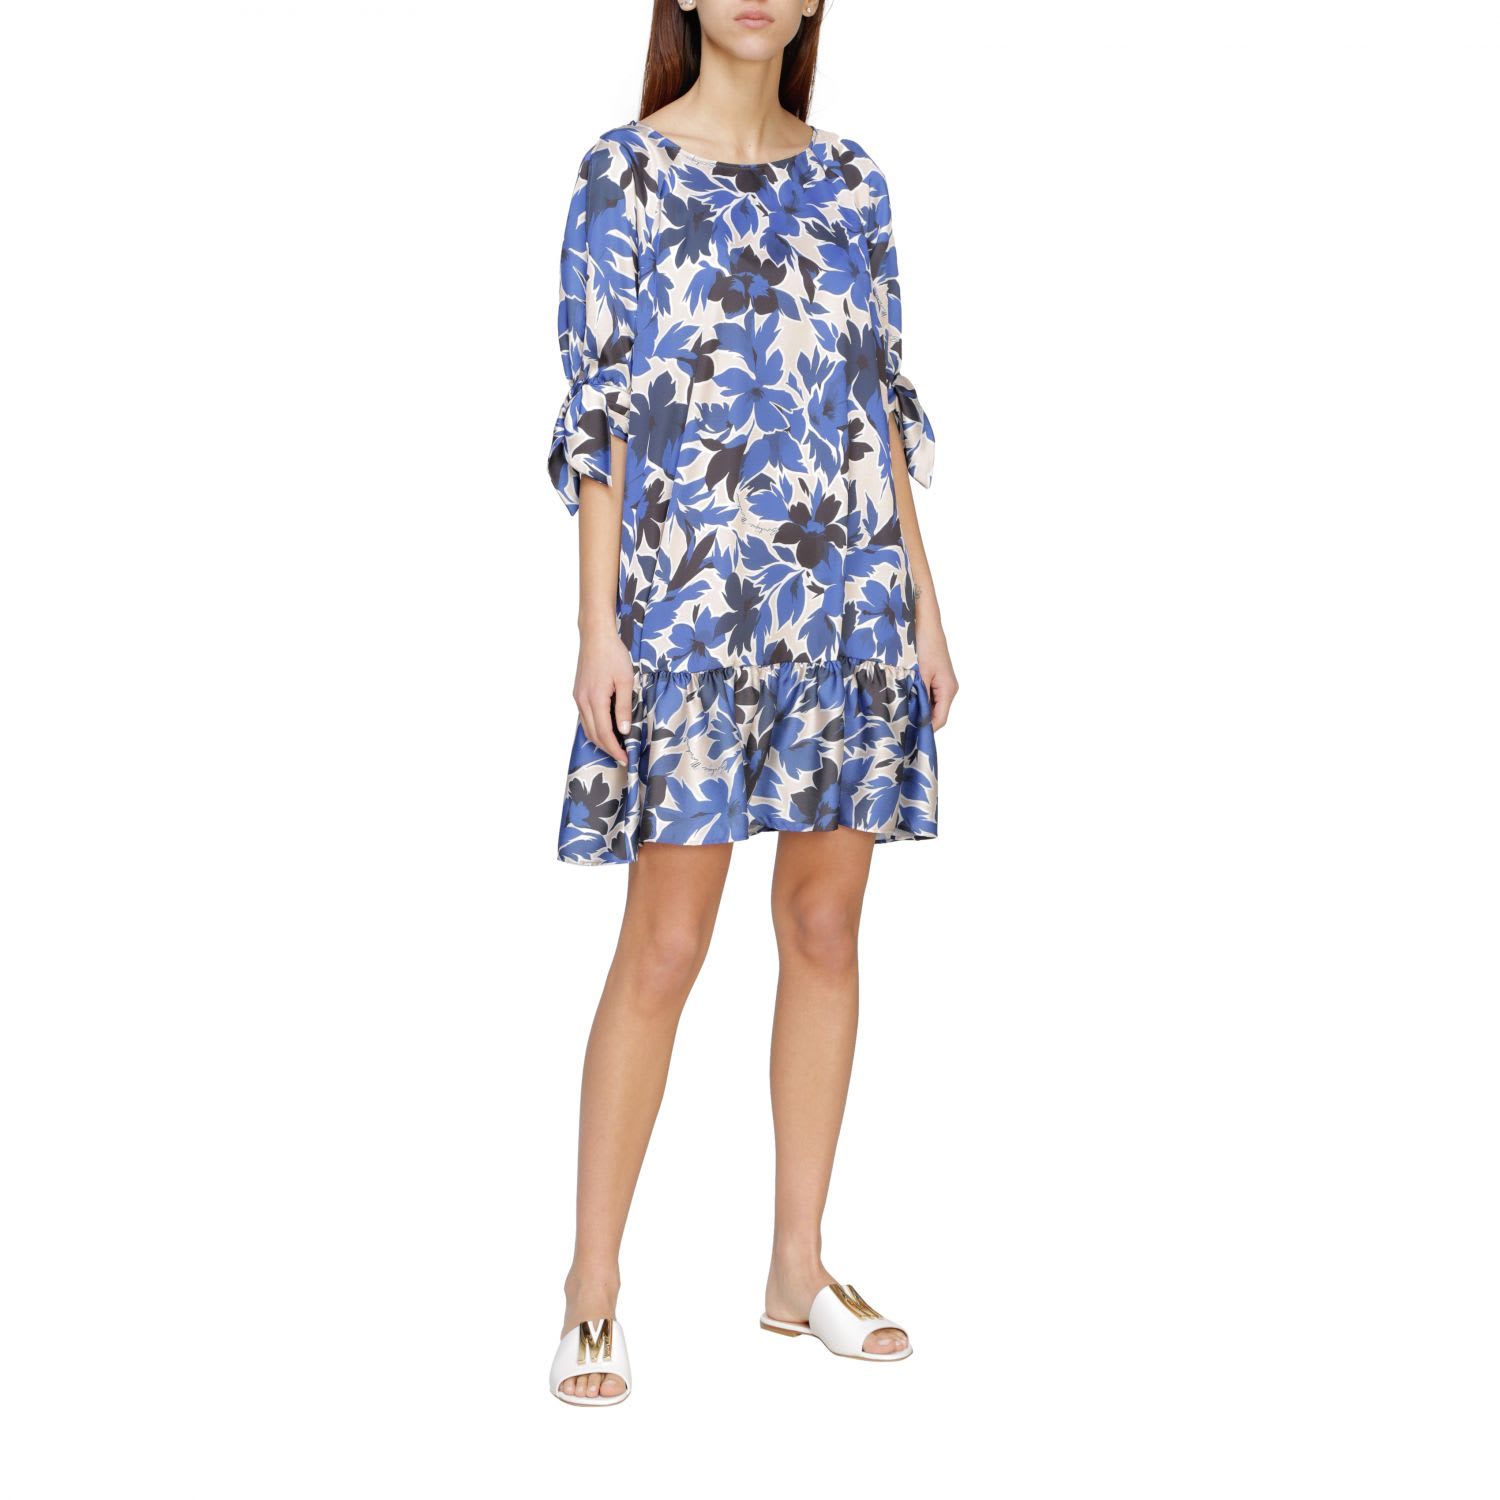 Buy Boutique Moschino Dress Wide Moschino Boutique Crepe Dress With Floral Print online, shop Boutique Moschino with free shipping